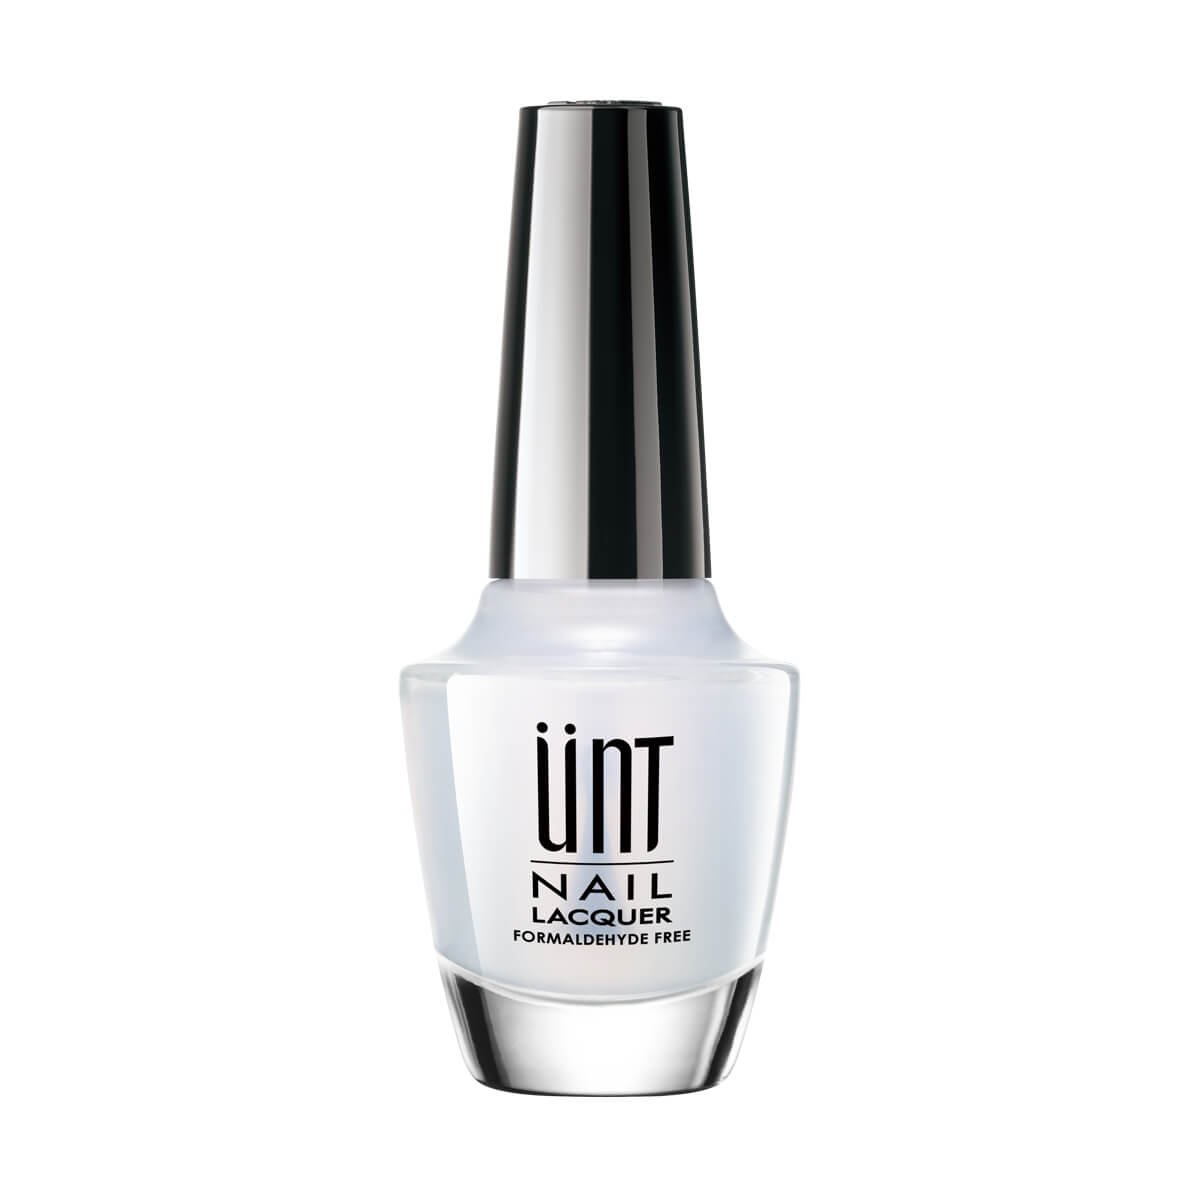 UNT Ready For Takeoff Peelable Base Coat, Peel Off Base Coat, No Latex Cuticle Barrier, Non-glue Based Nail Tape, 0.5 Ounce, Top Ranking from Blogger's Testing by UNT